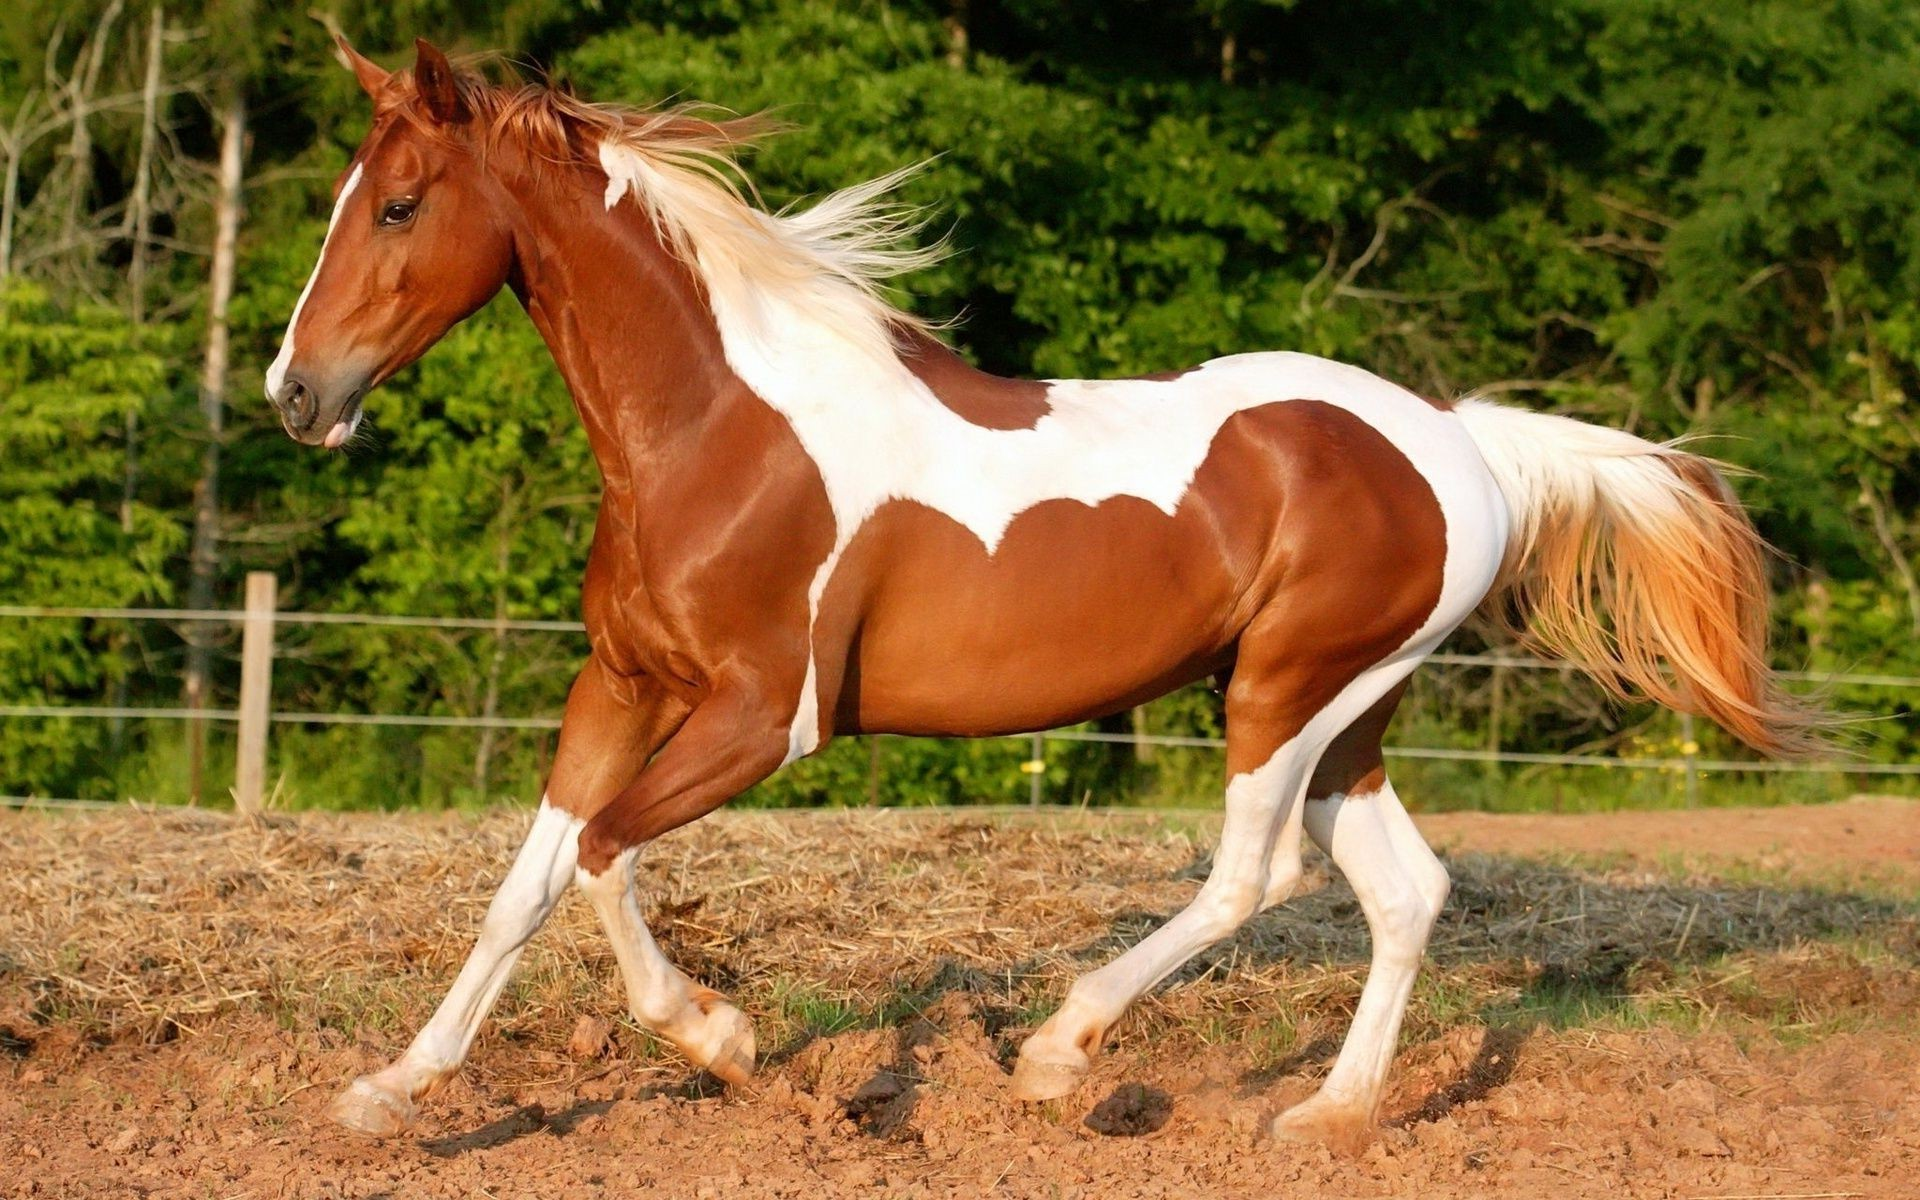 graceful horse with a shiny coat